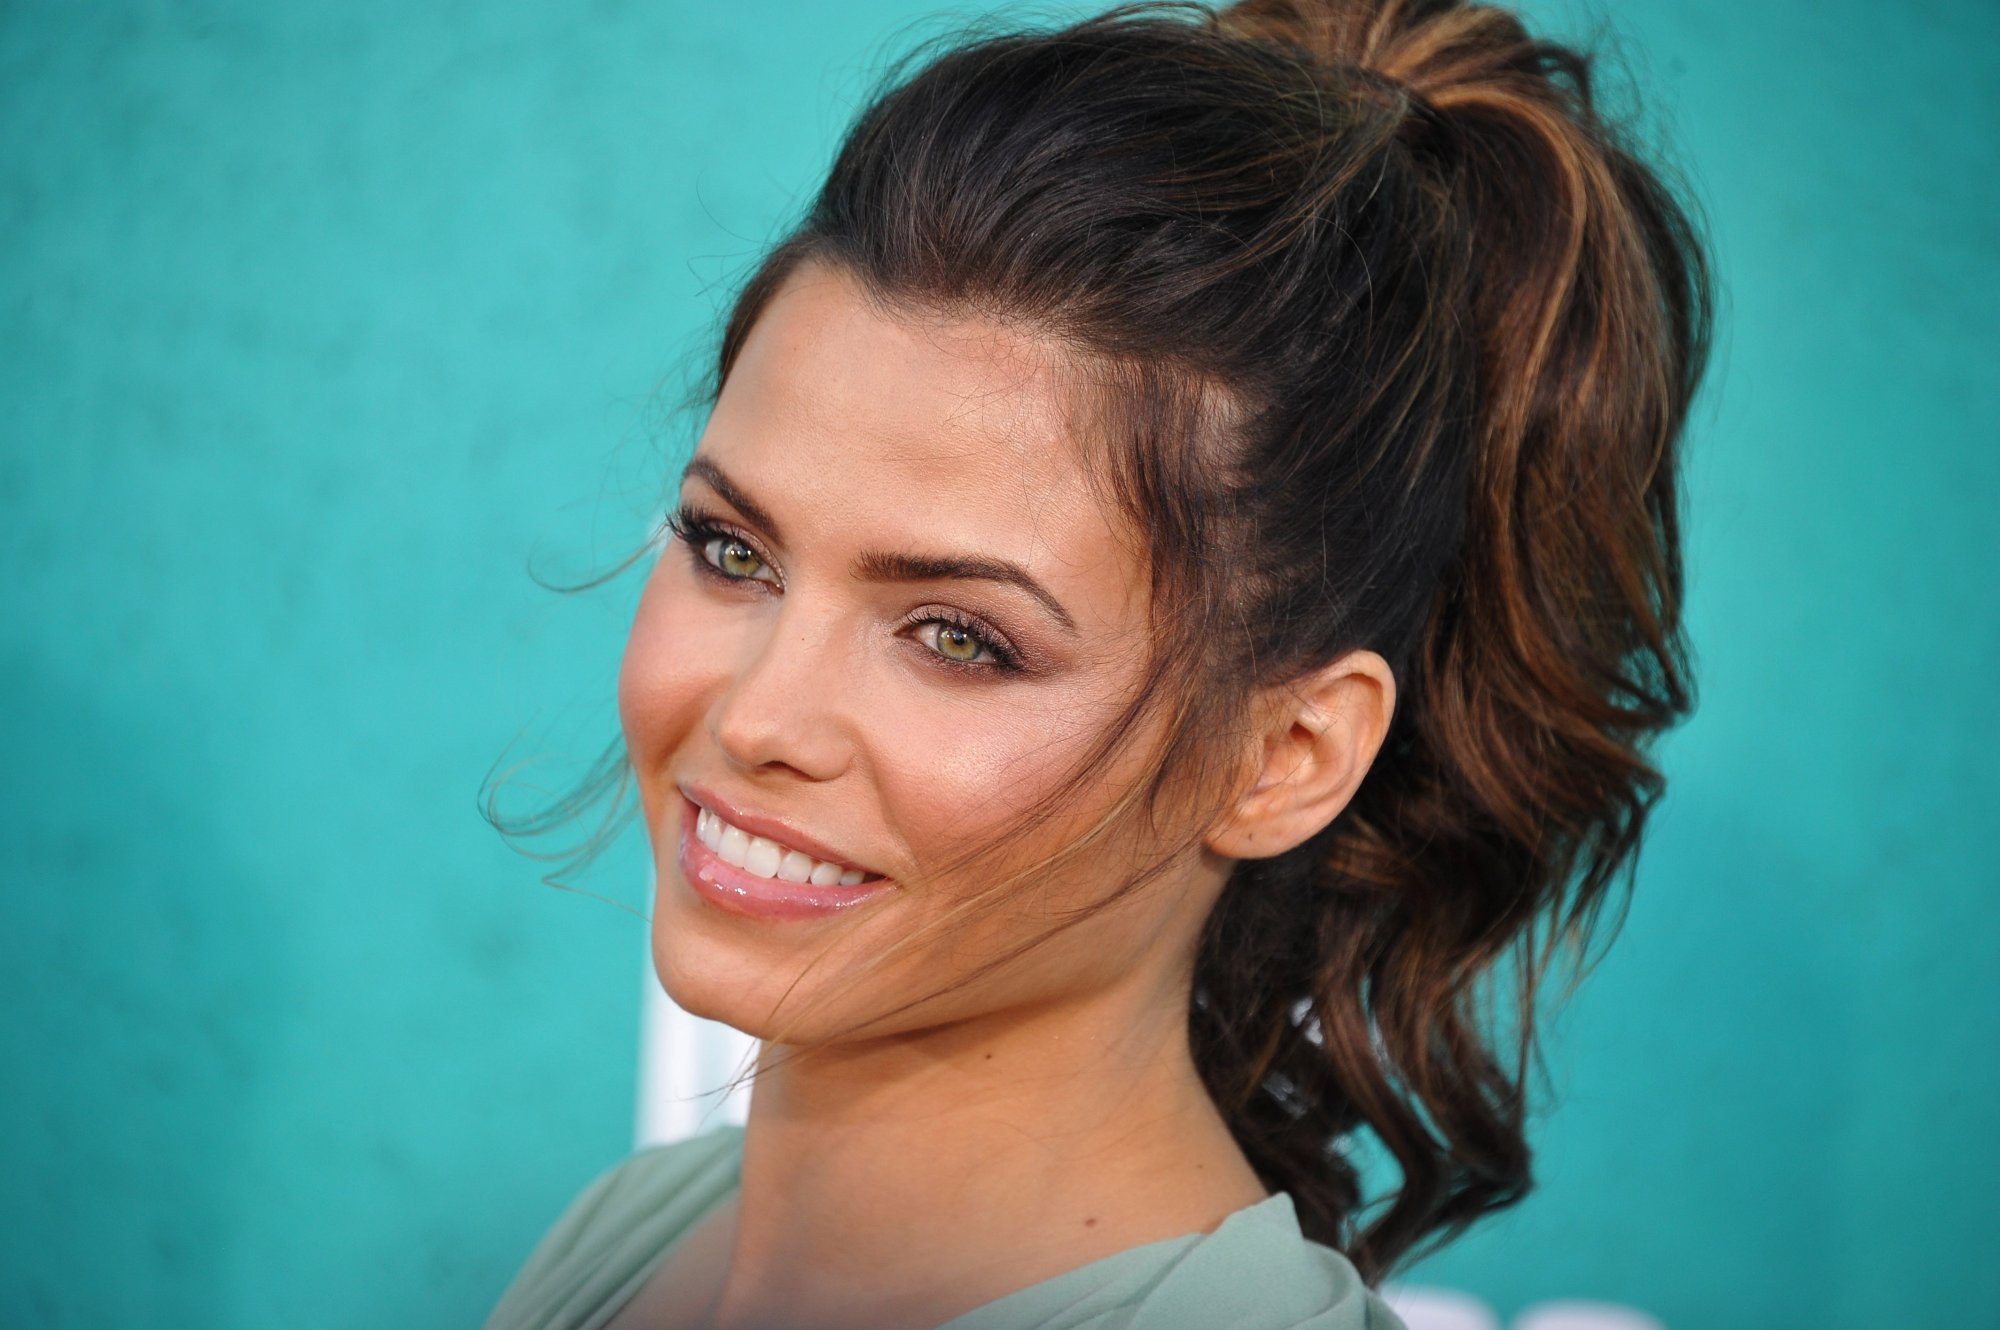 jenna dewan desktop wallpaper 50026